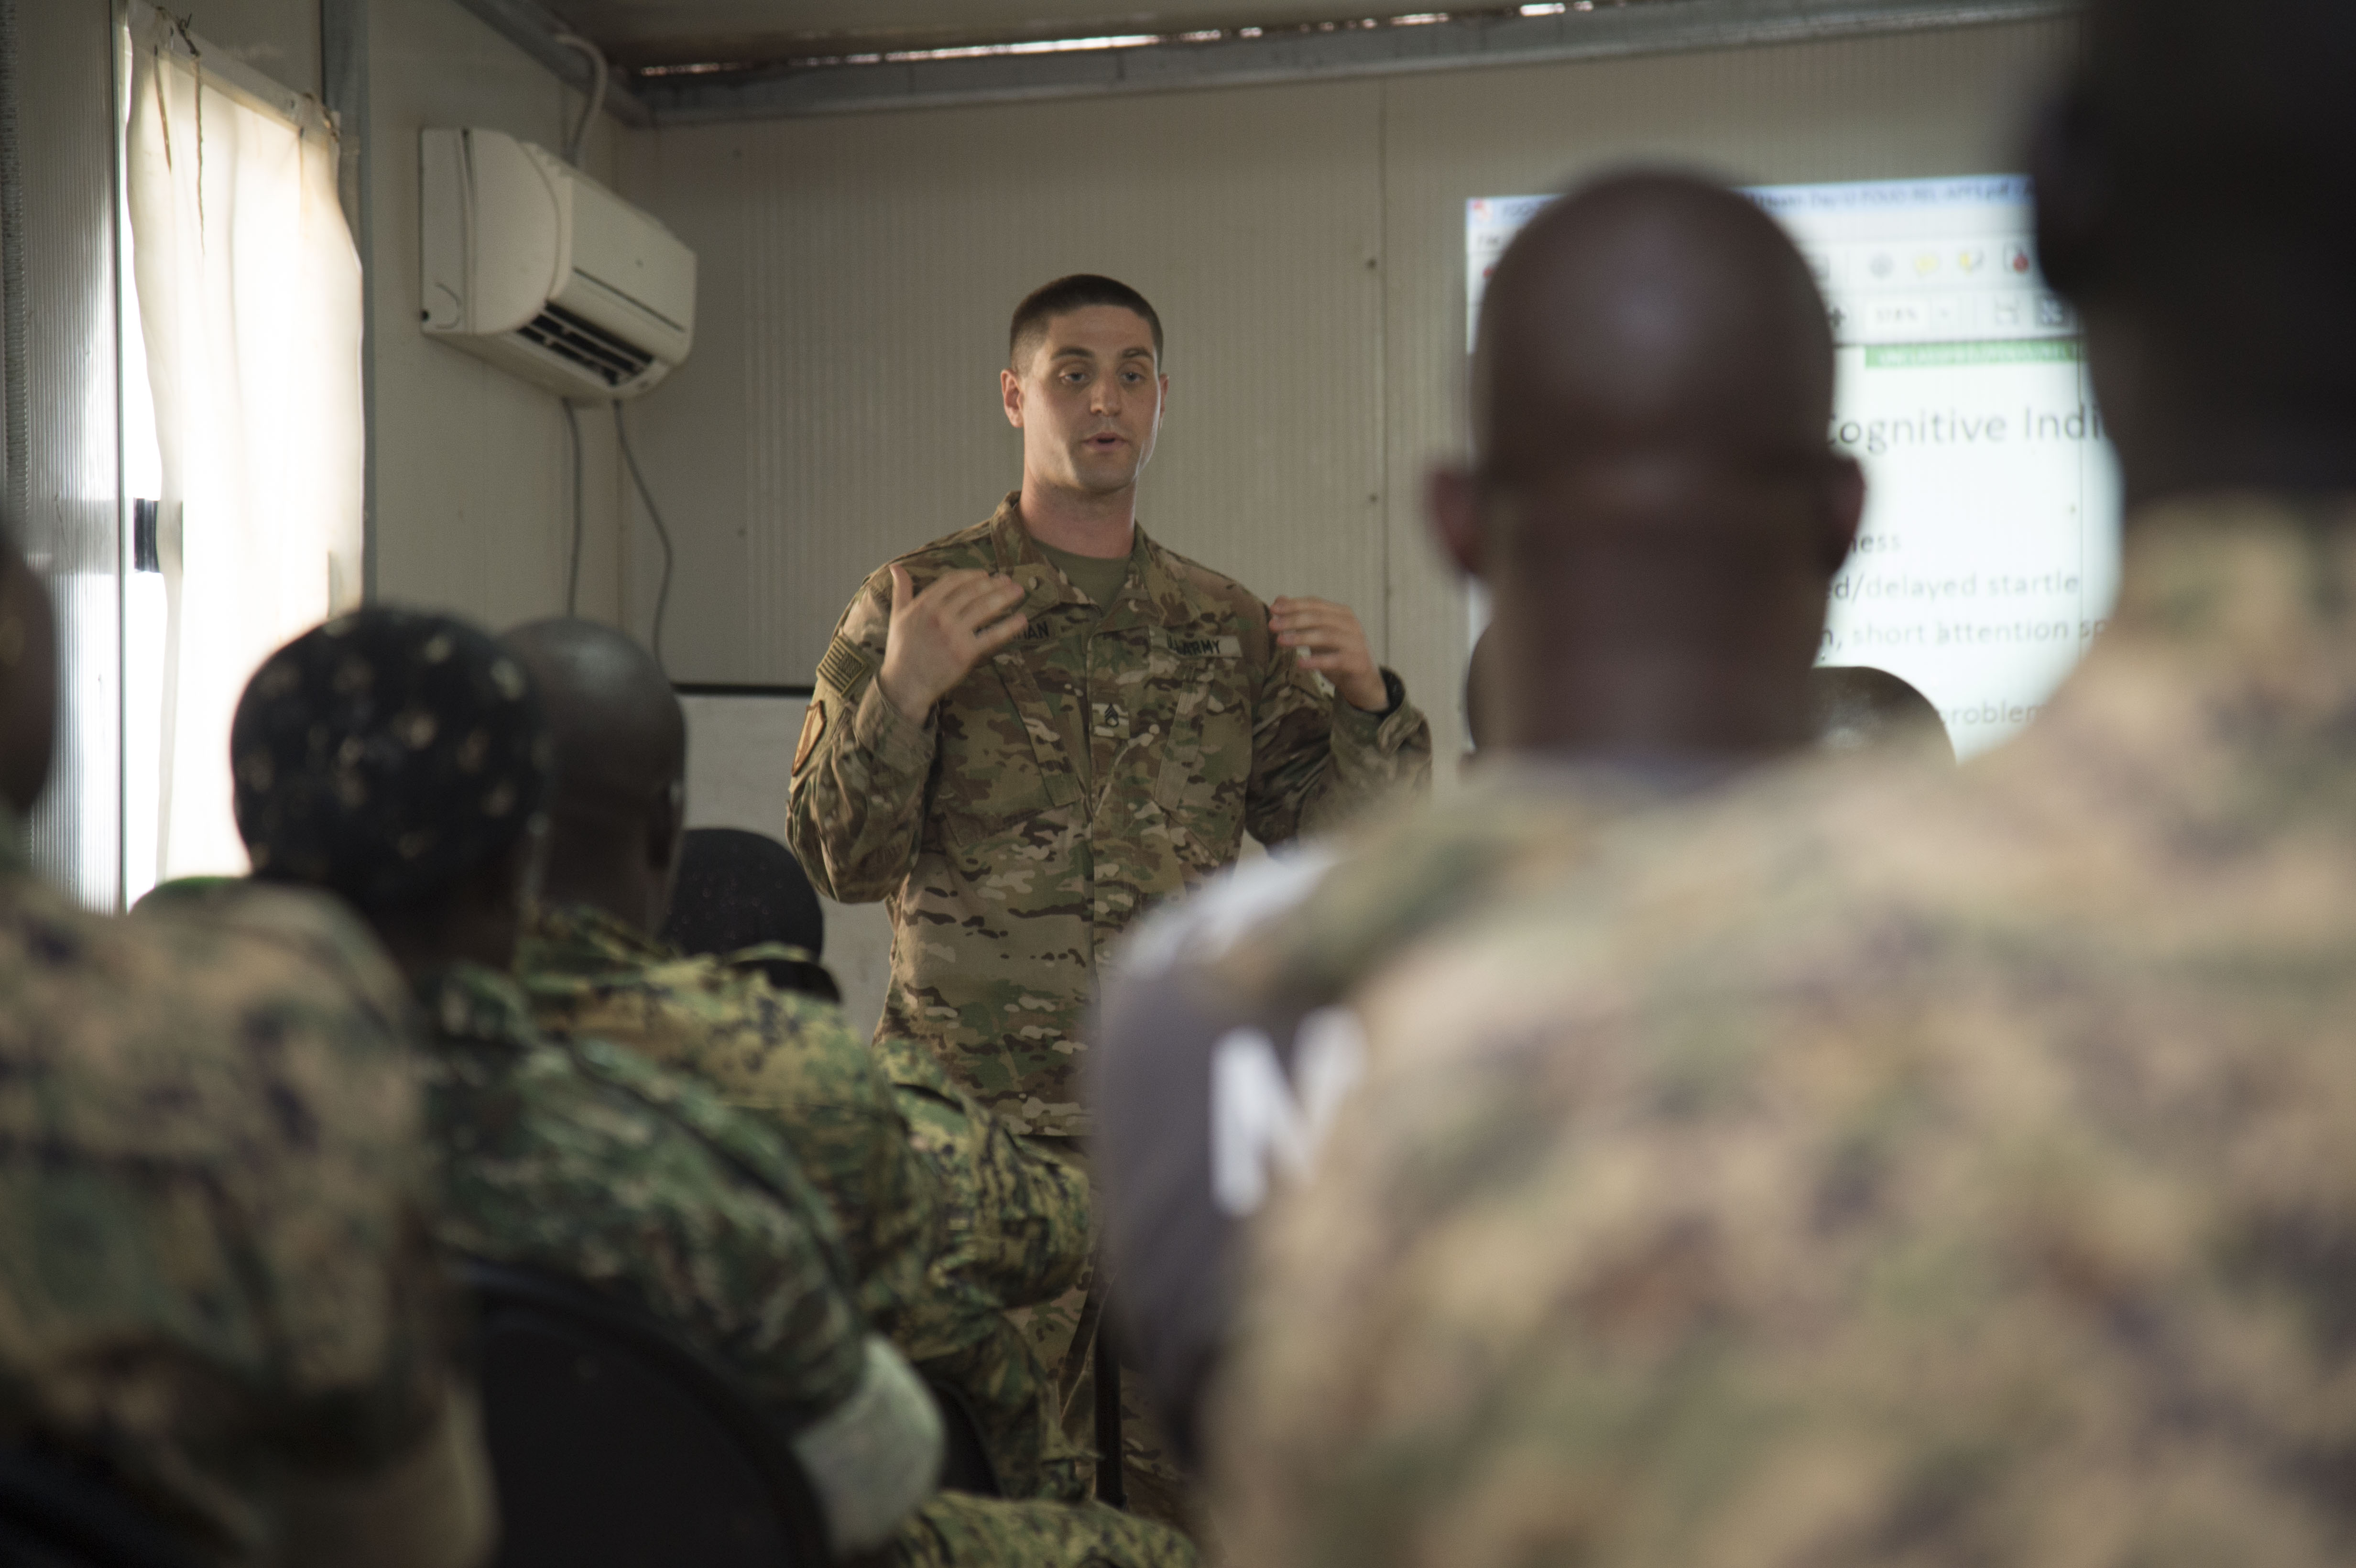 U.S. Army Staff Sgt. Matthew Glaberman, Charlie Company, 411th Civil Affairs Battalion operations sergeant, talks about the effects combat stress can have on a person in a deployed environment, and how to recognize and treat it during a mental health sharing of best practices Oct. 10, 2016, in Mogadishu, Somalia. More than 40 members of the Uganda People's Defense Force attended the class to learn about combat stress while they are deployed in support of the African Union Mission to Somalia. (U.S. Air Force photo by Staff Sgt. Eric Summers Jr.)